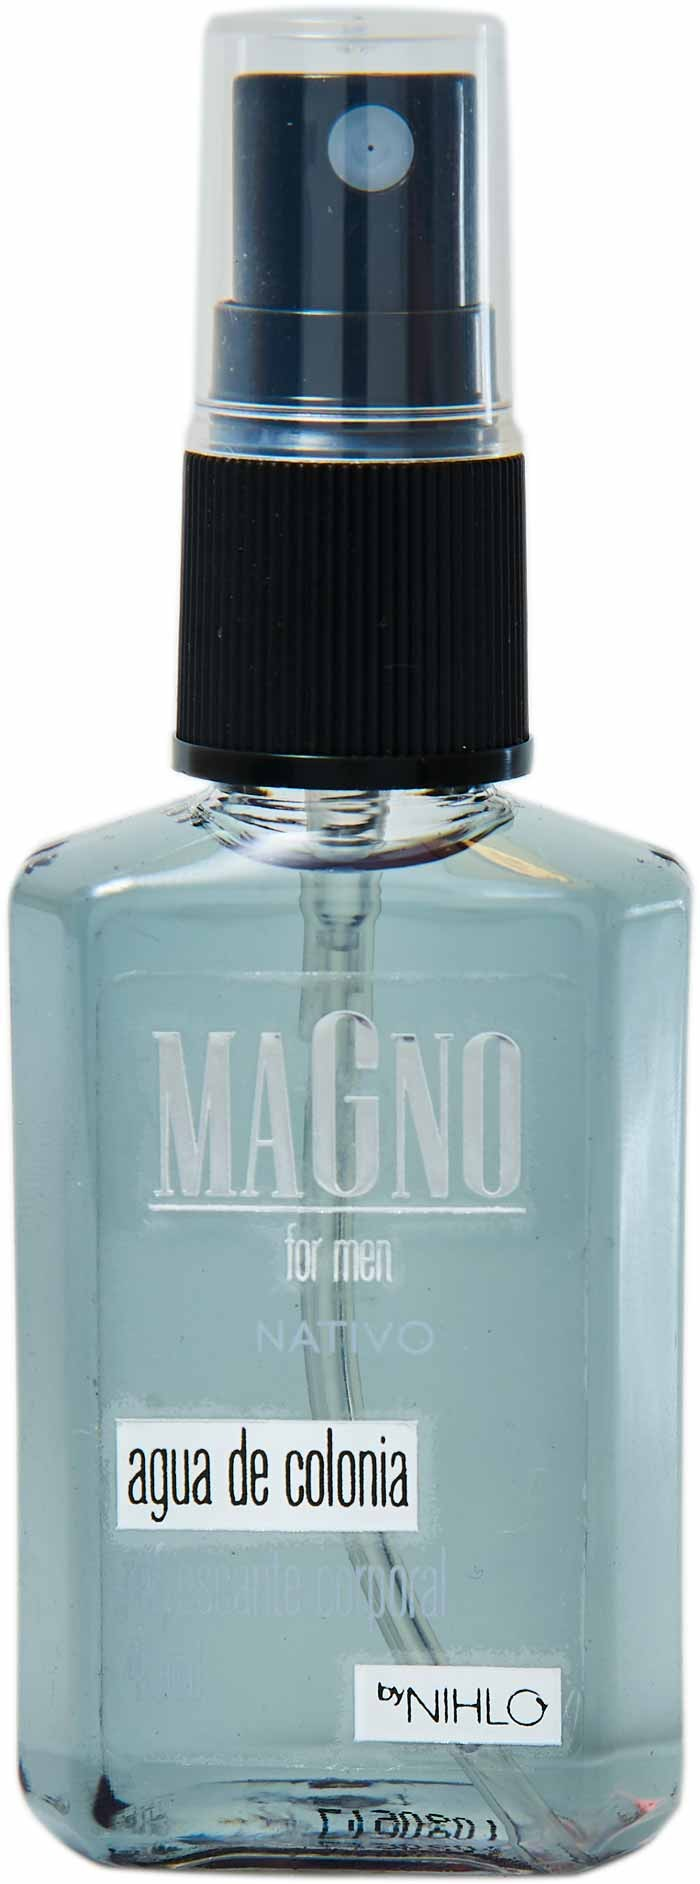 Agua Colonia NATIVO 45 ml